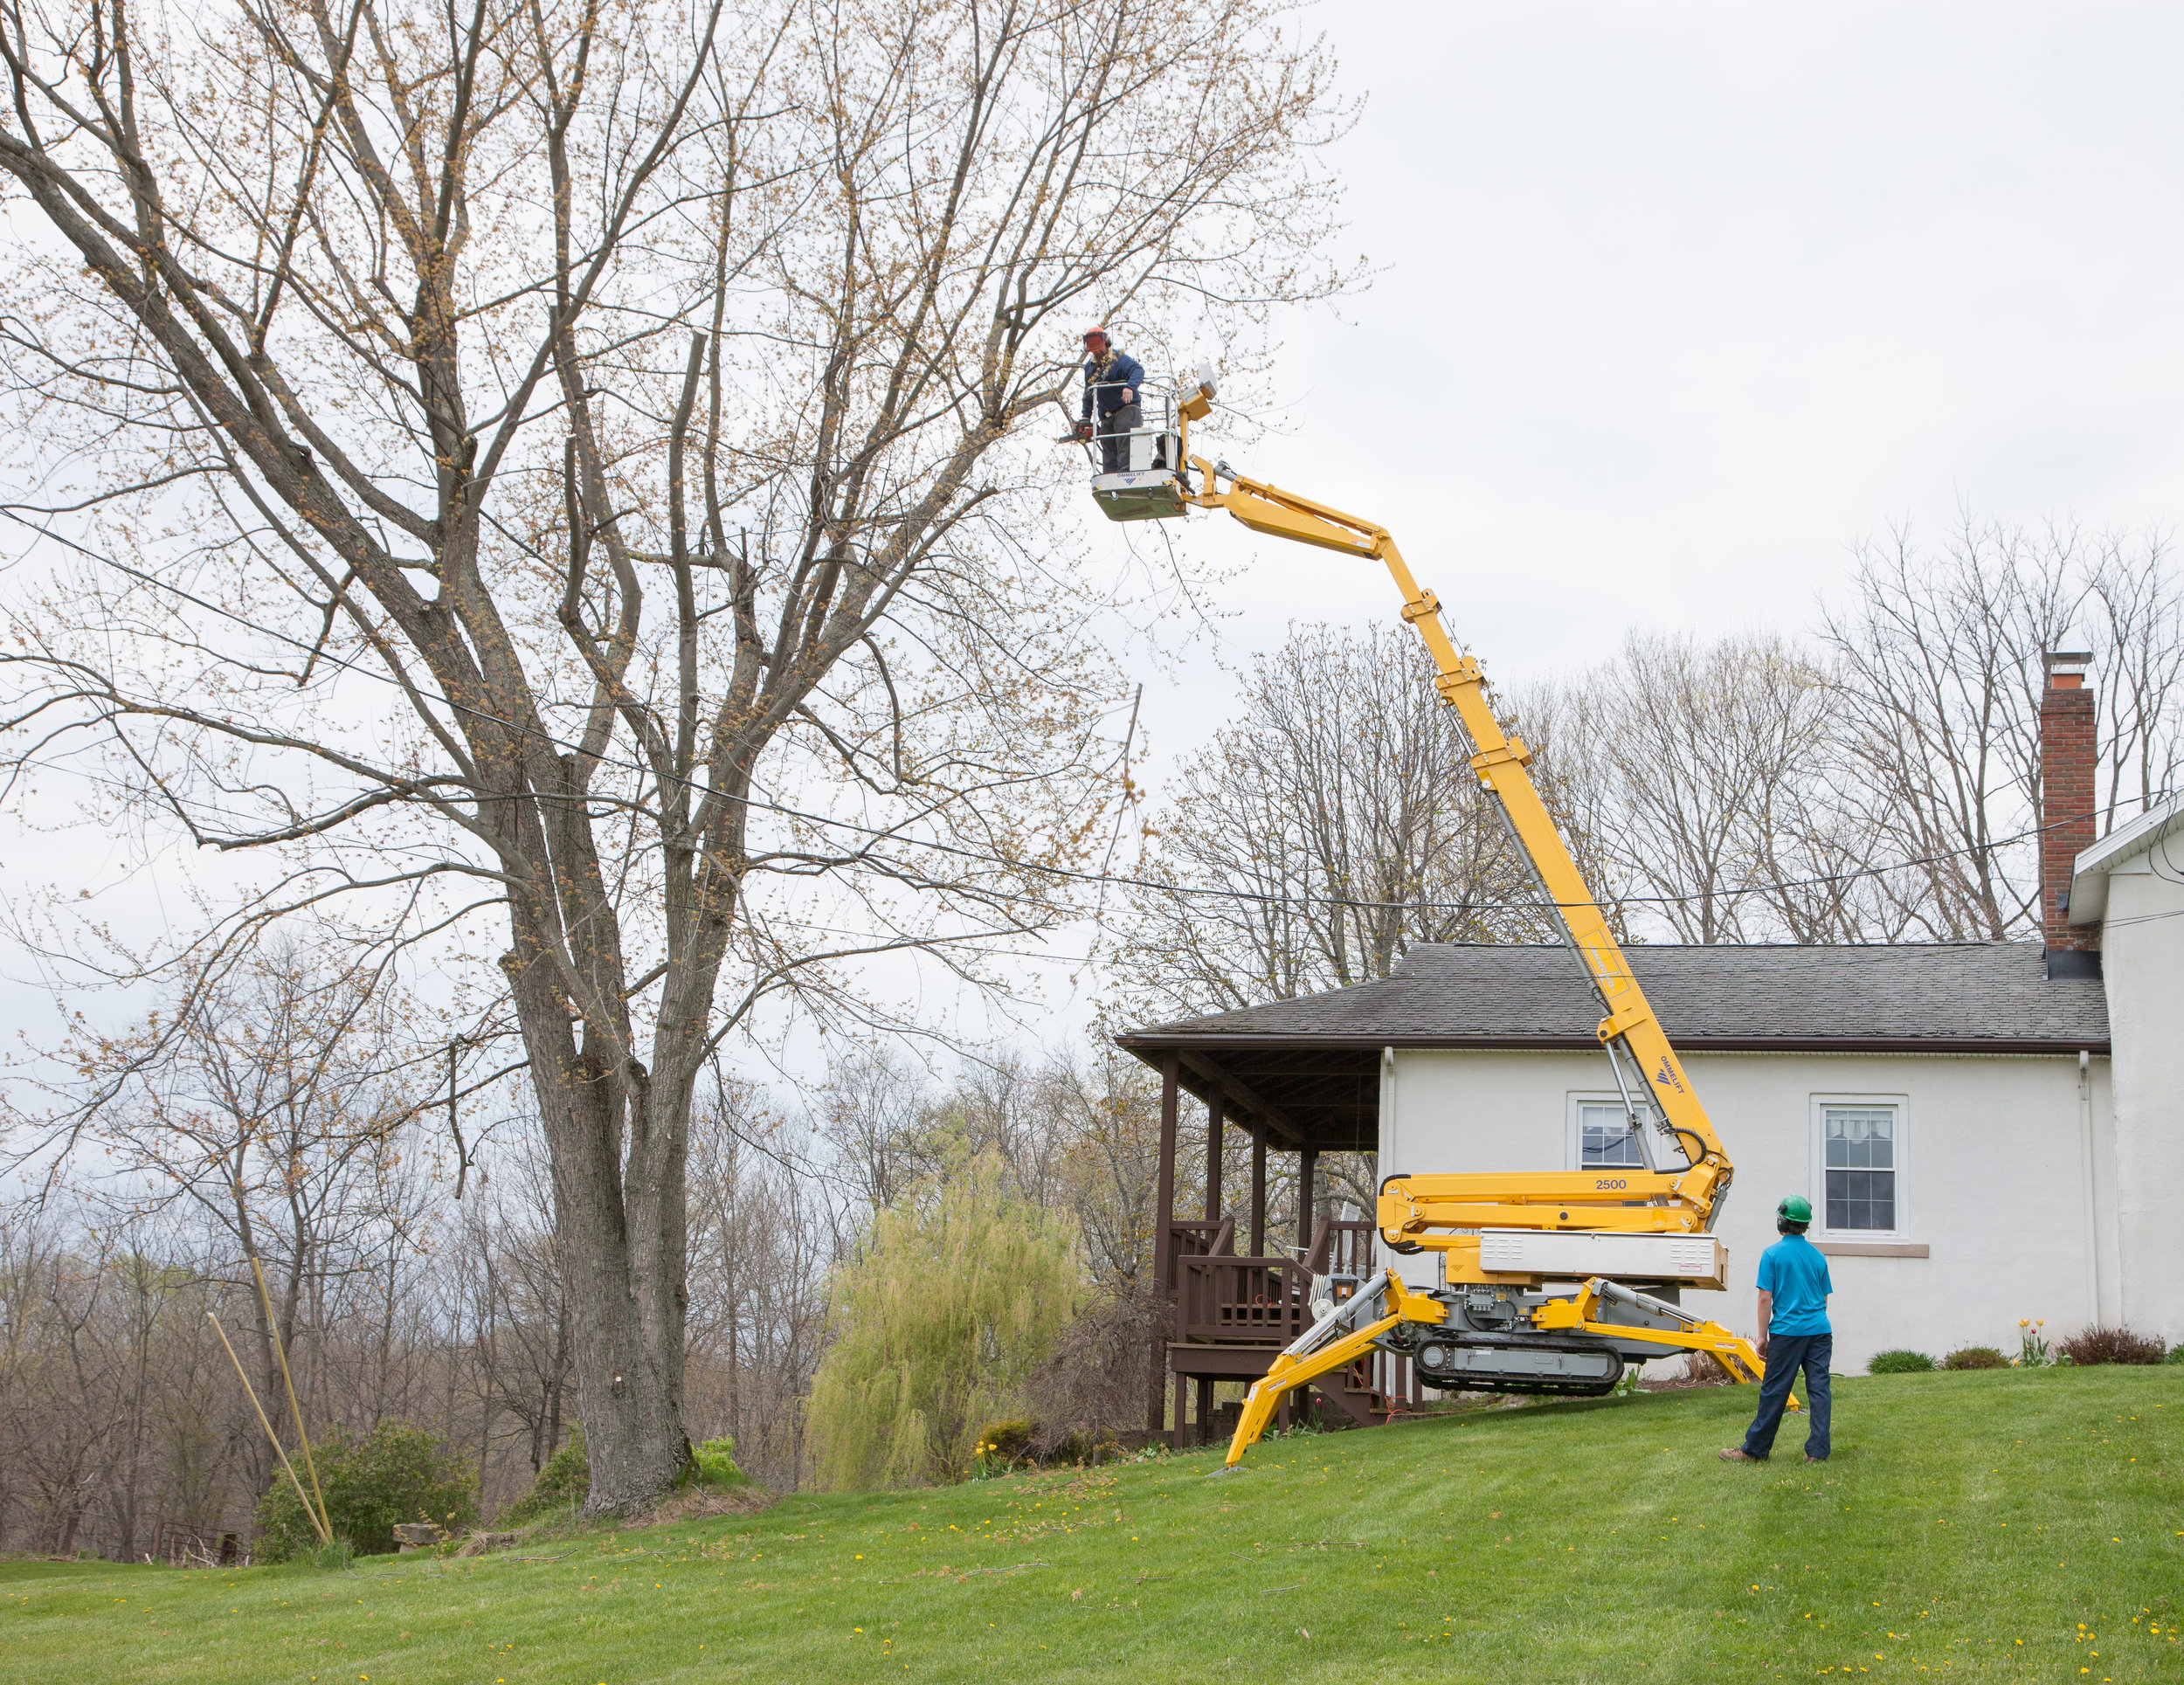 Tree removal in canton, wooster, orville, and dalton ohio.